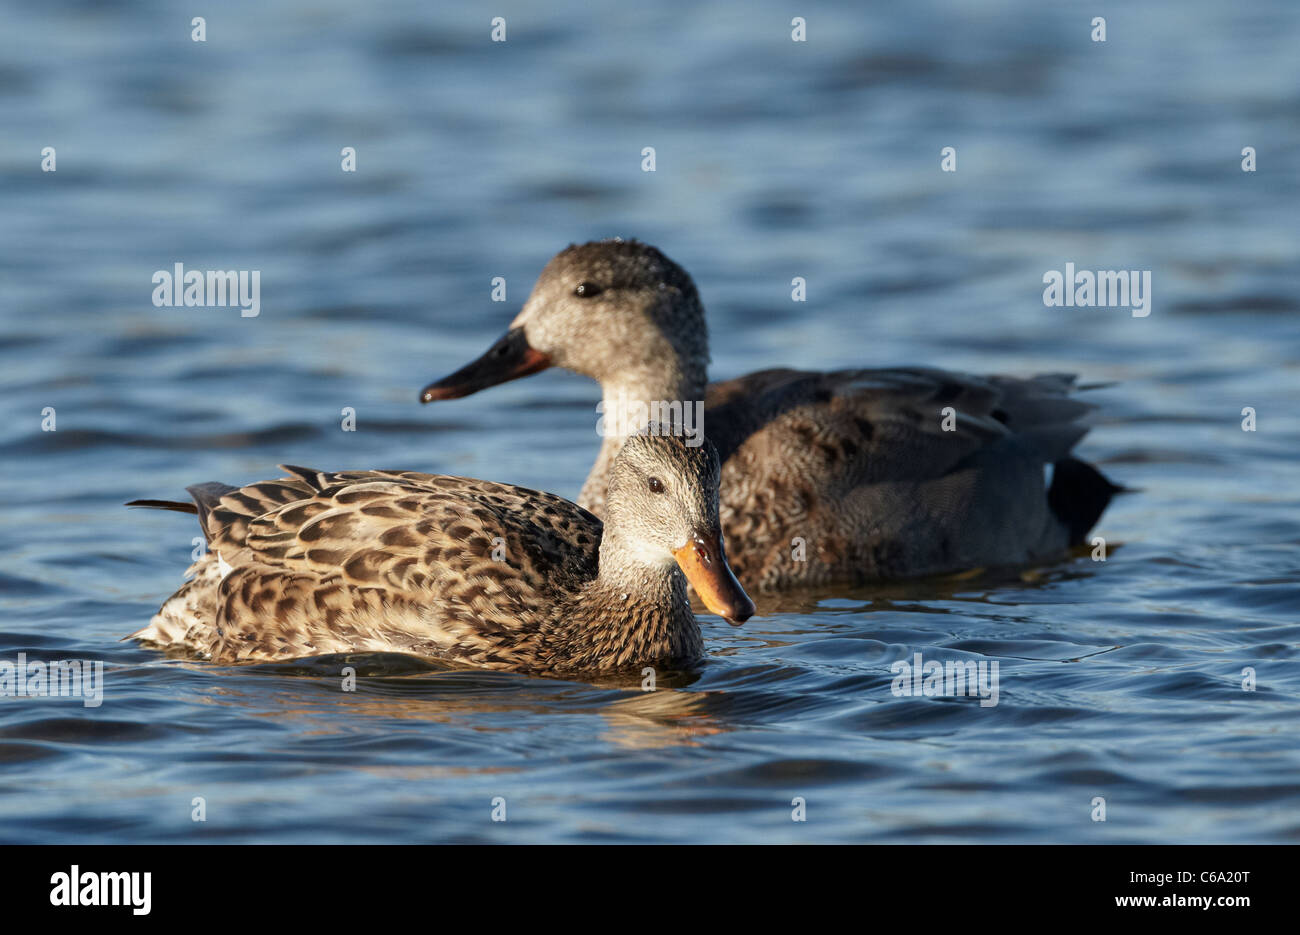 Gadwall (Anas strepera), couple on water. - Stock Image